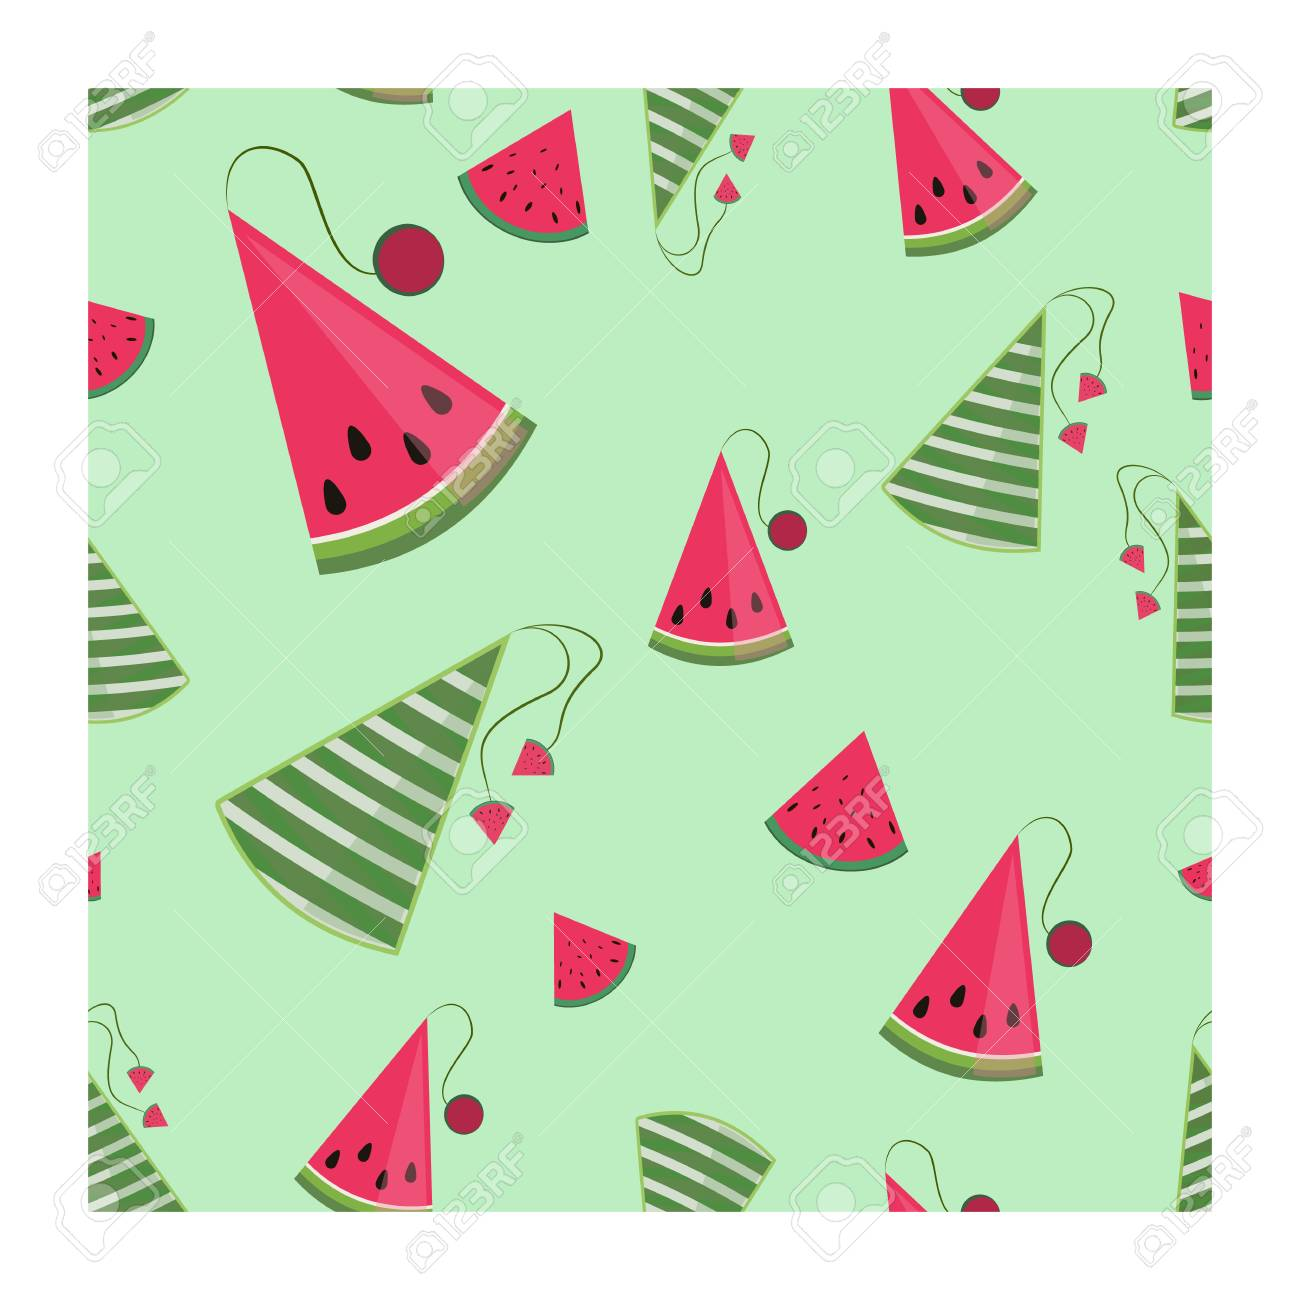 Concept for the National Watermelon Day, seamless gift wrapping pattern, vector - 102394926